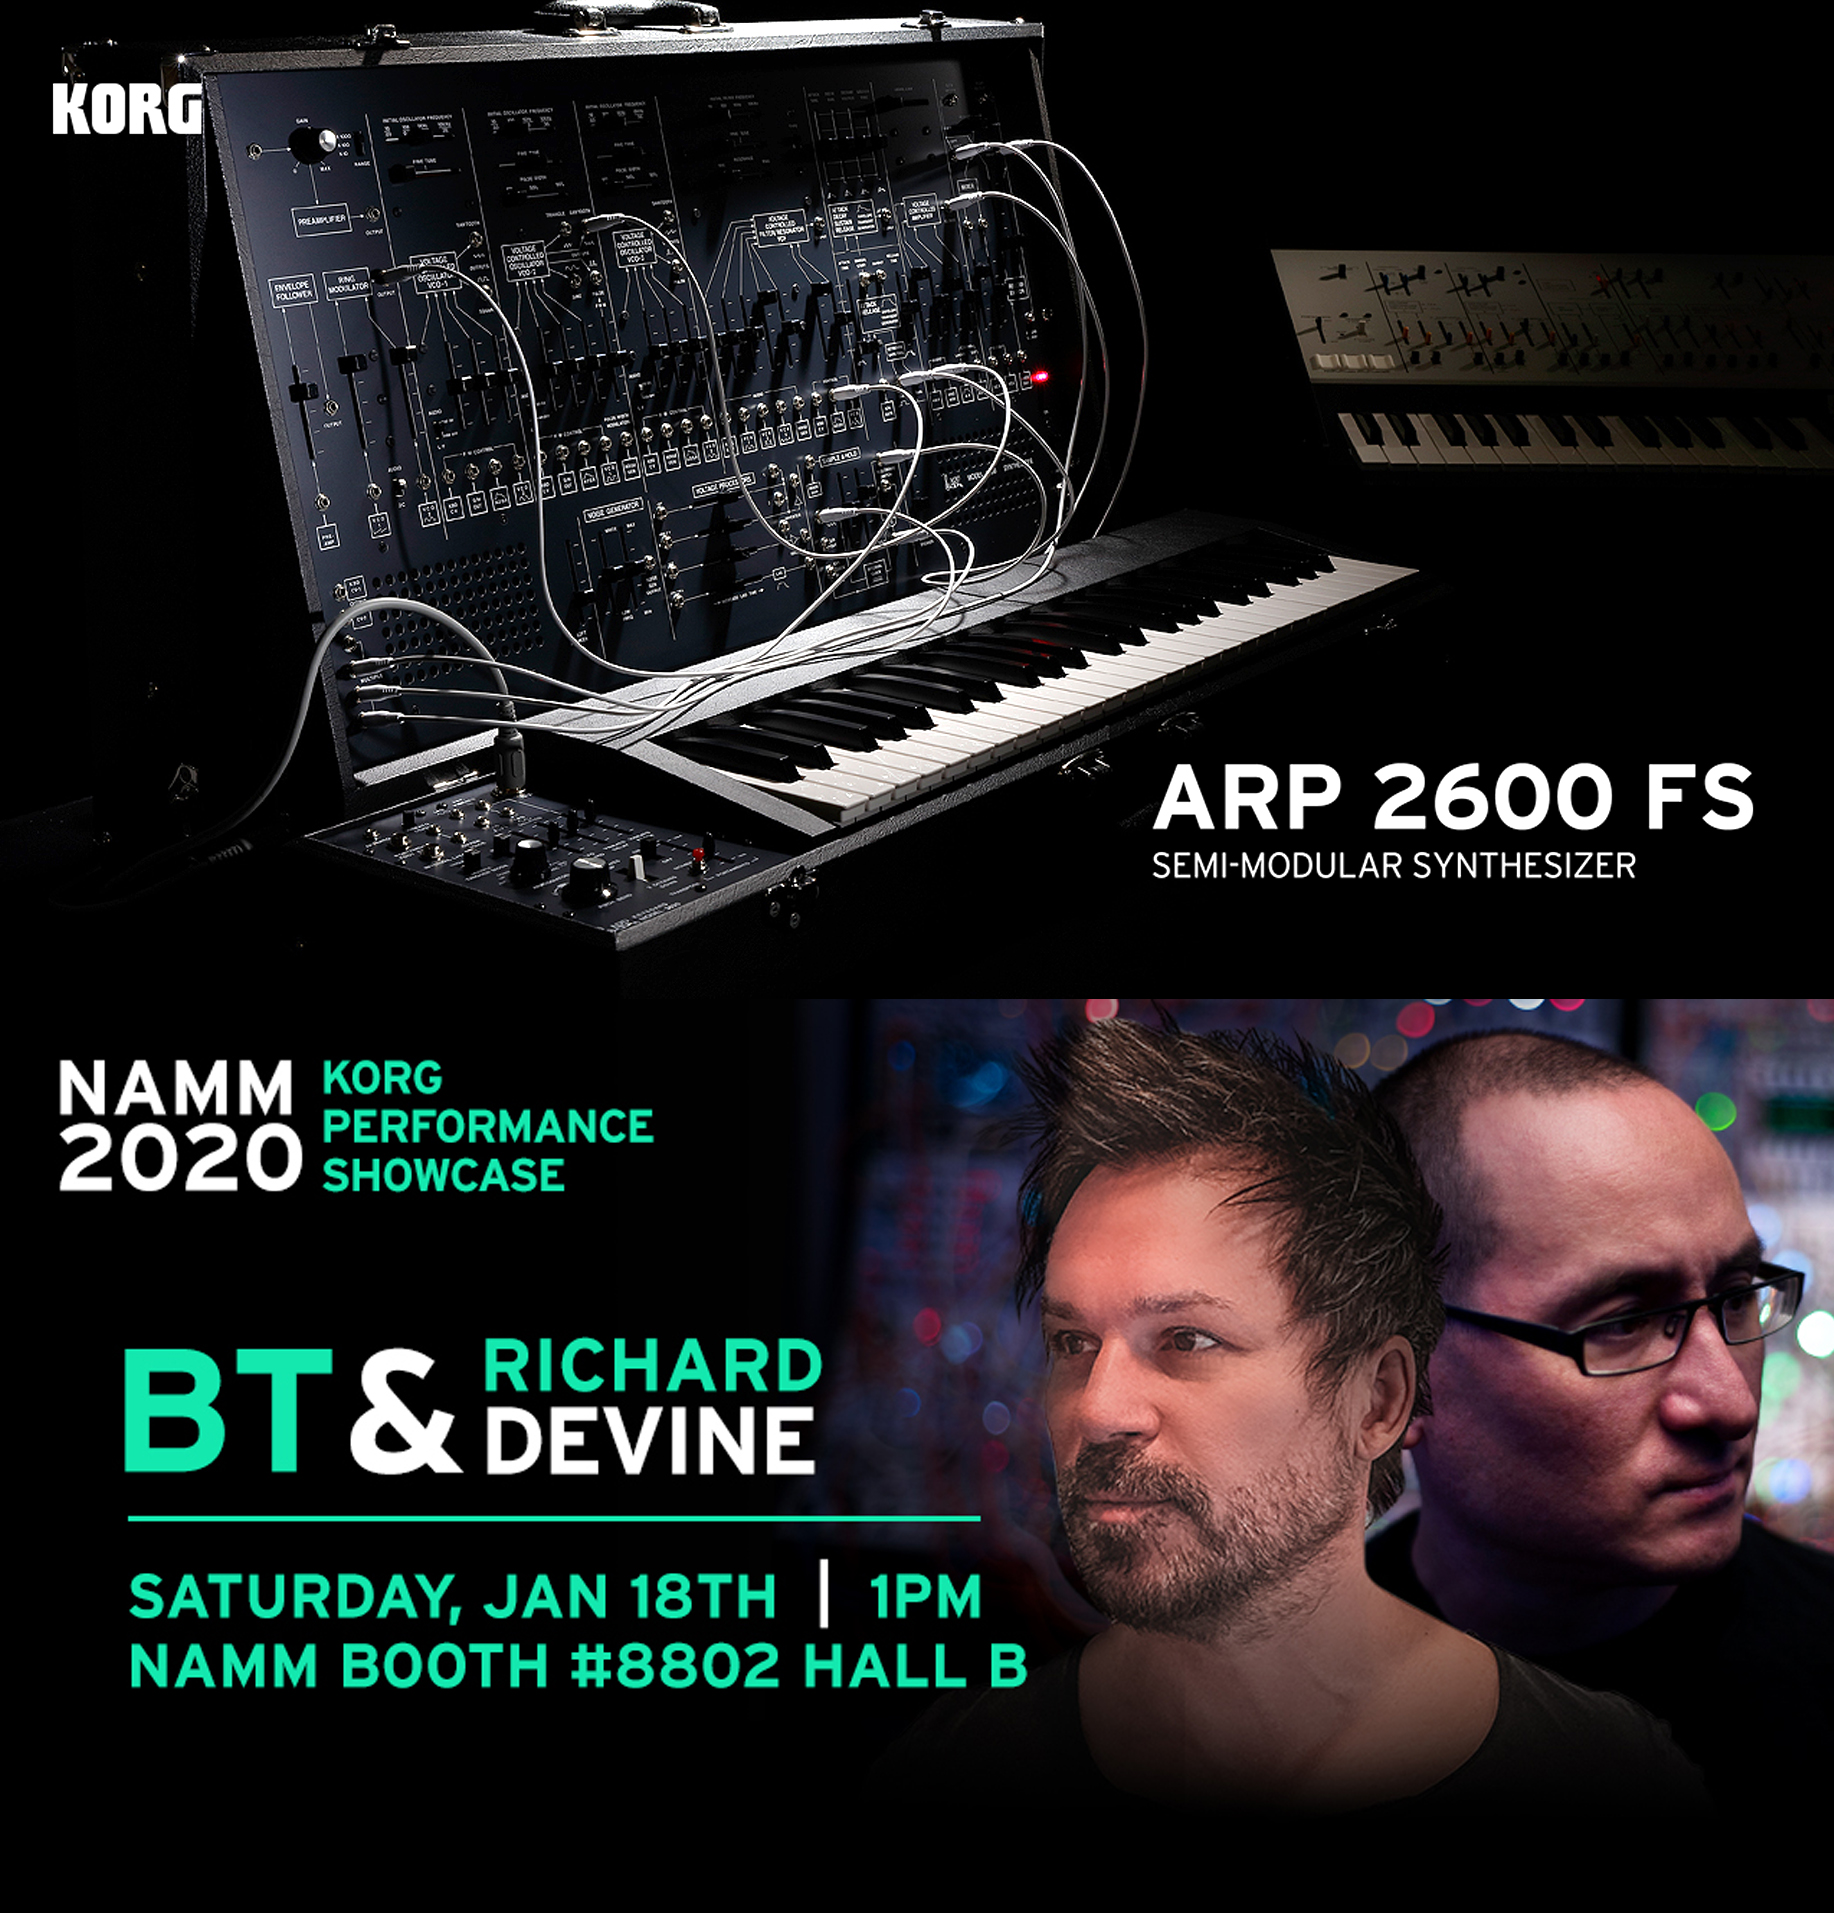 Saturday at NAMM, 1PM January 18th catch Brian Transeau and I do a special performance at the @KorgUSA  booth using the new Arp-2600 modular synths. Booth #8802 Hall B https://t.co/L0U32THHl7